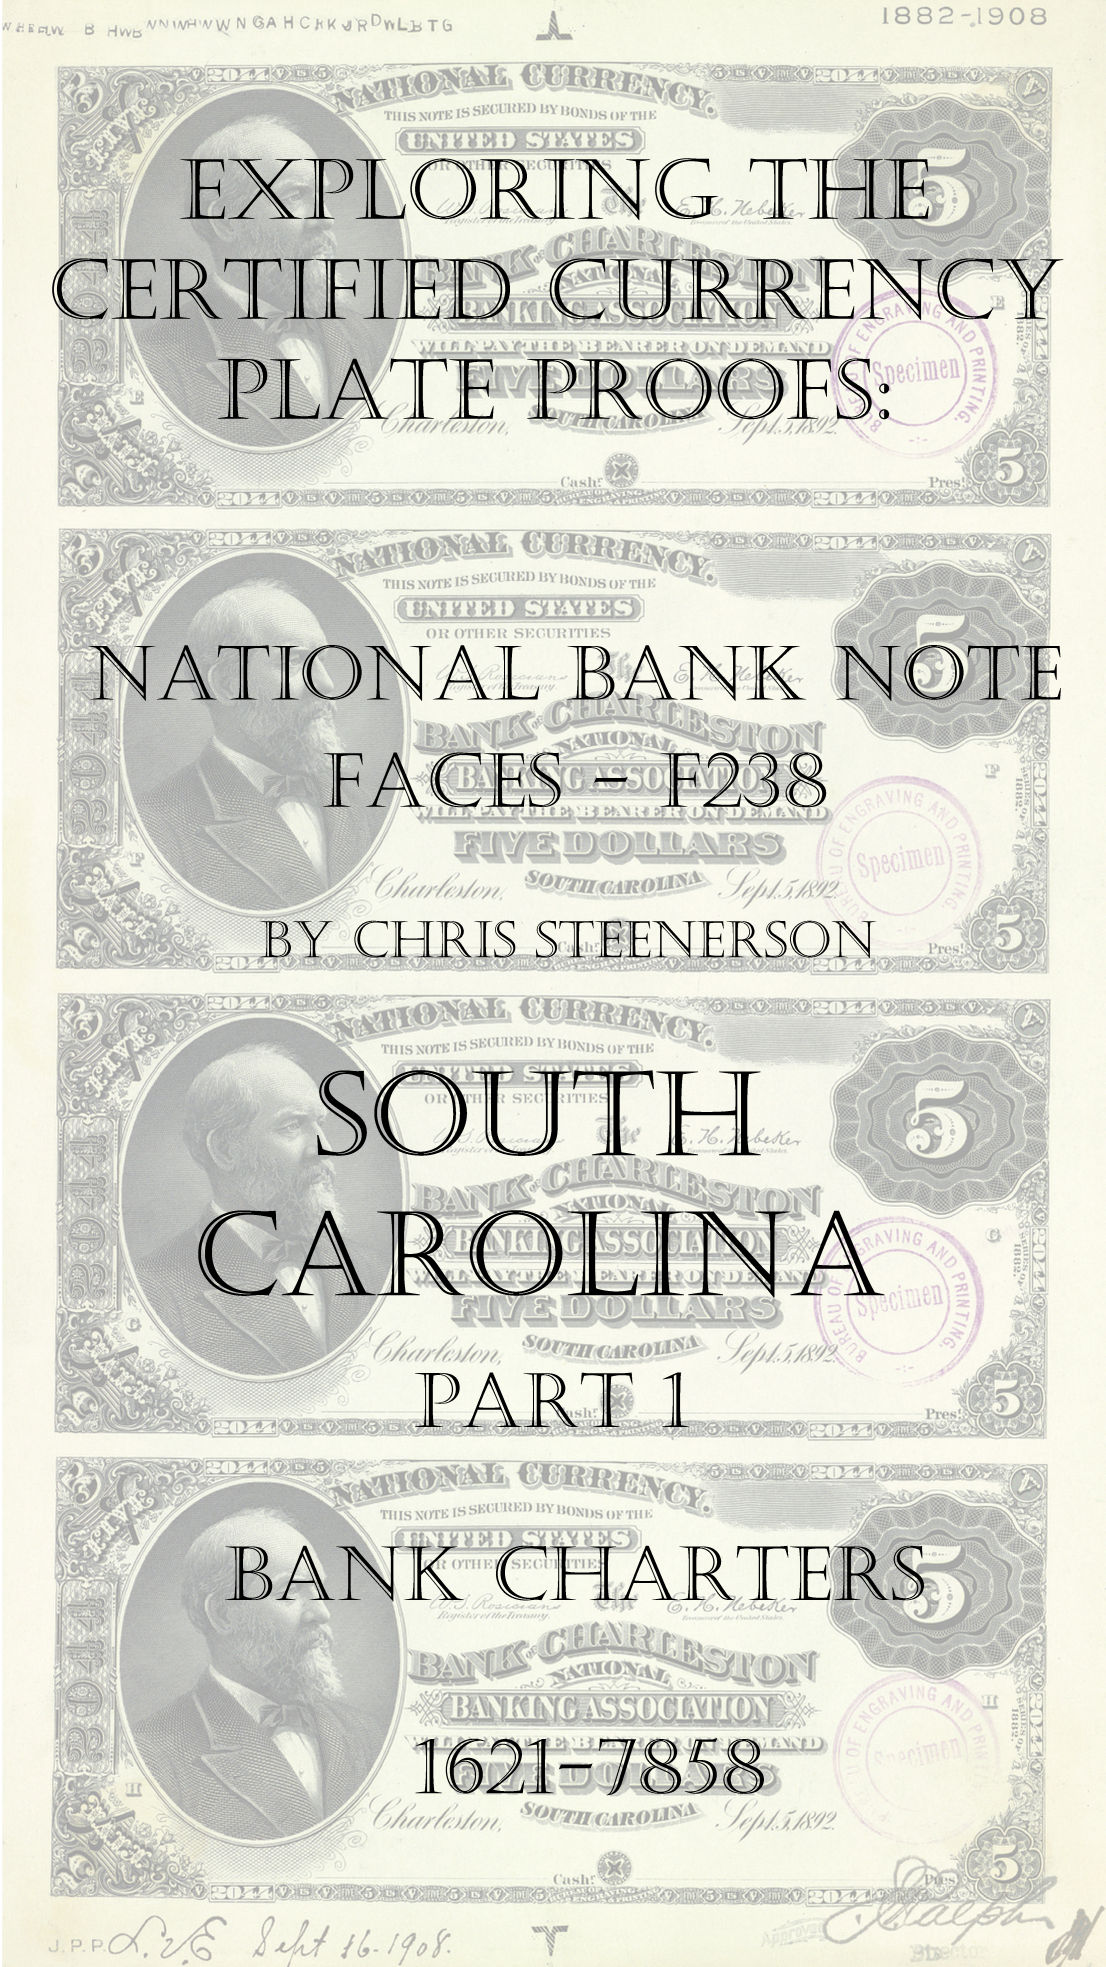 South Carolina National Bank Note Currency Proofs